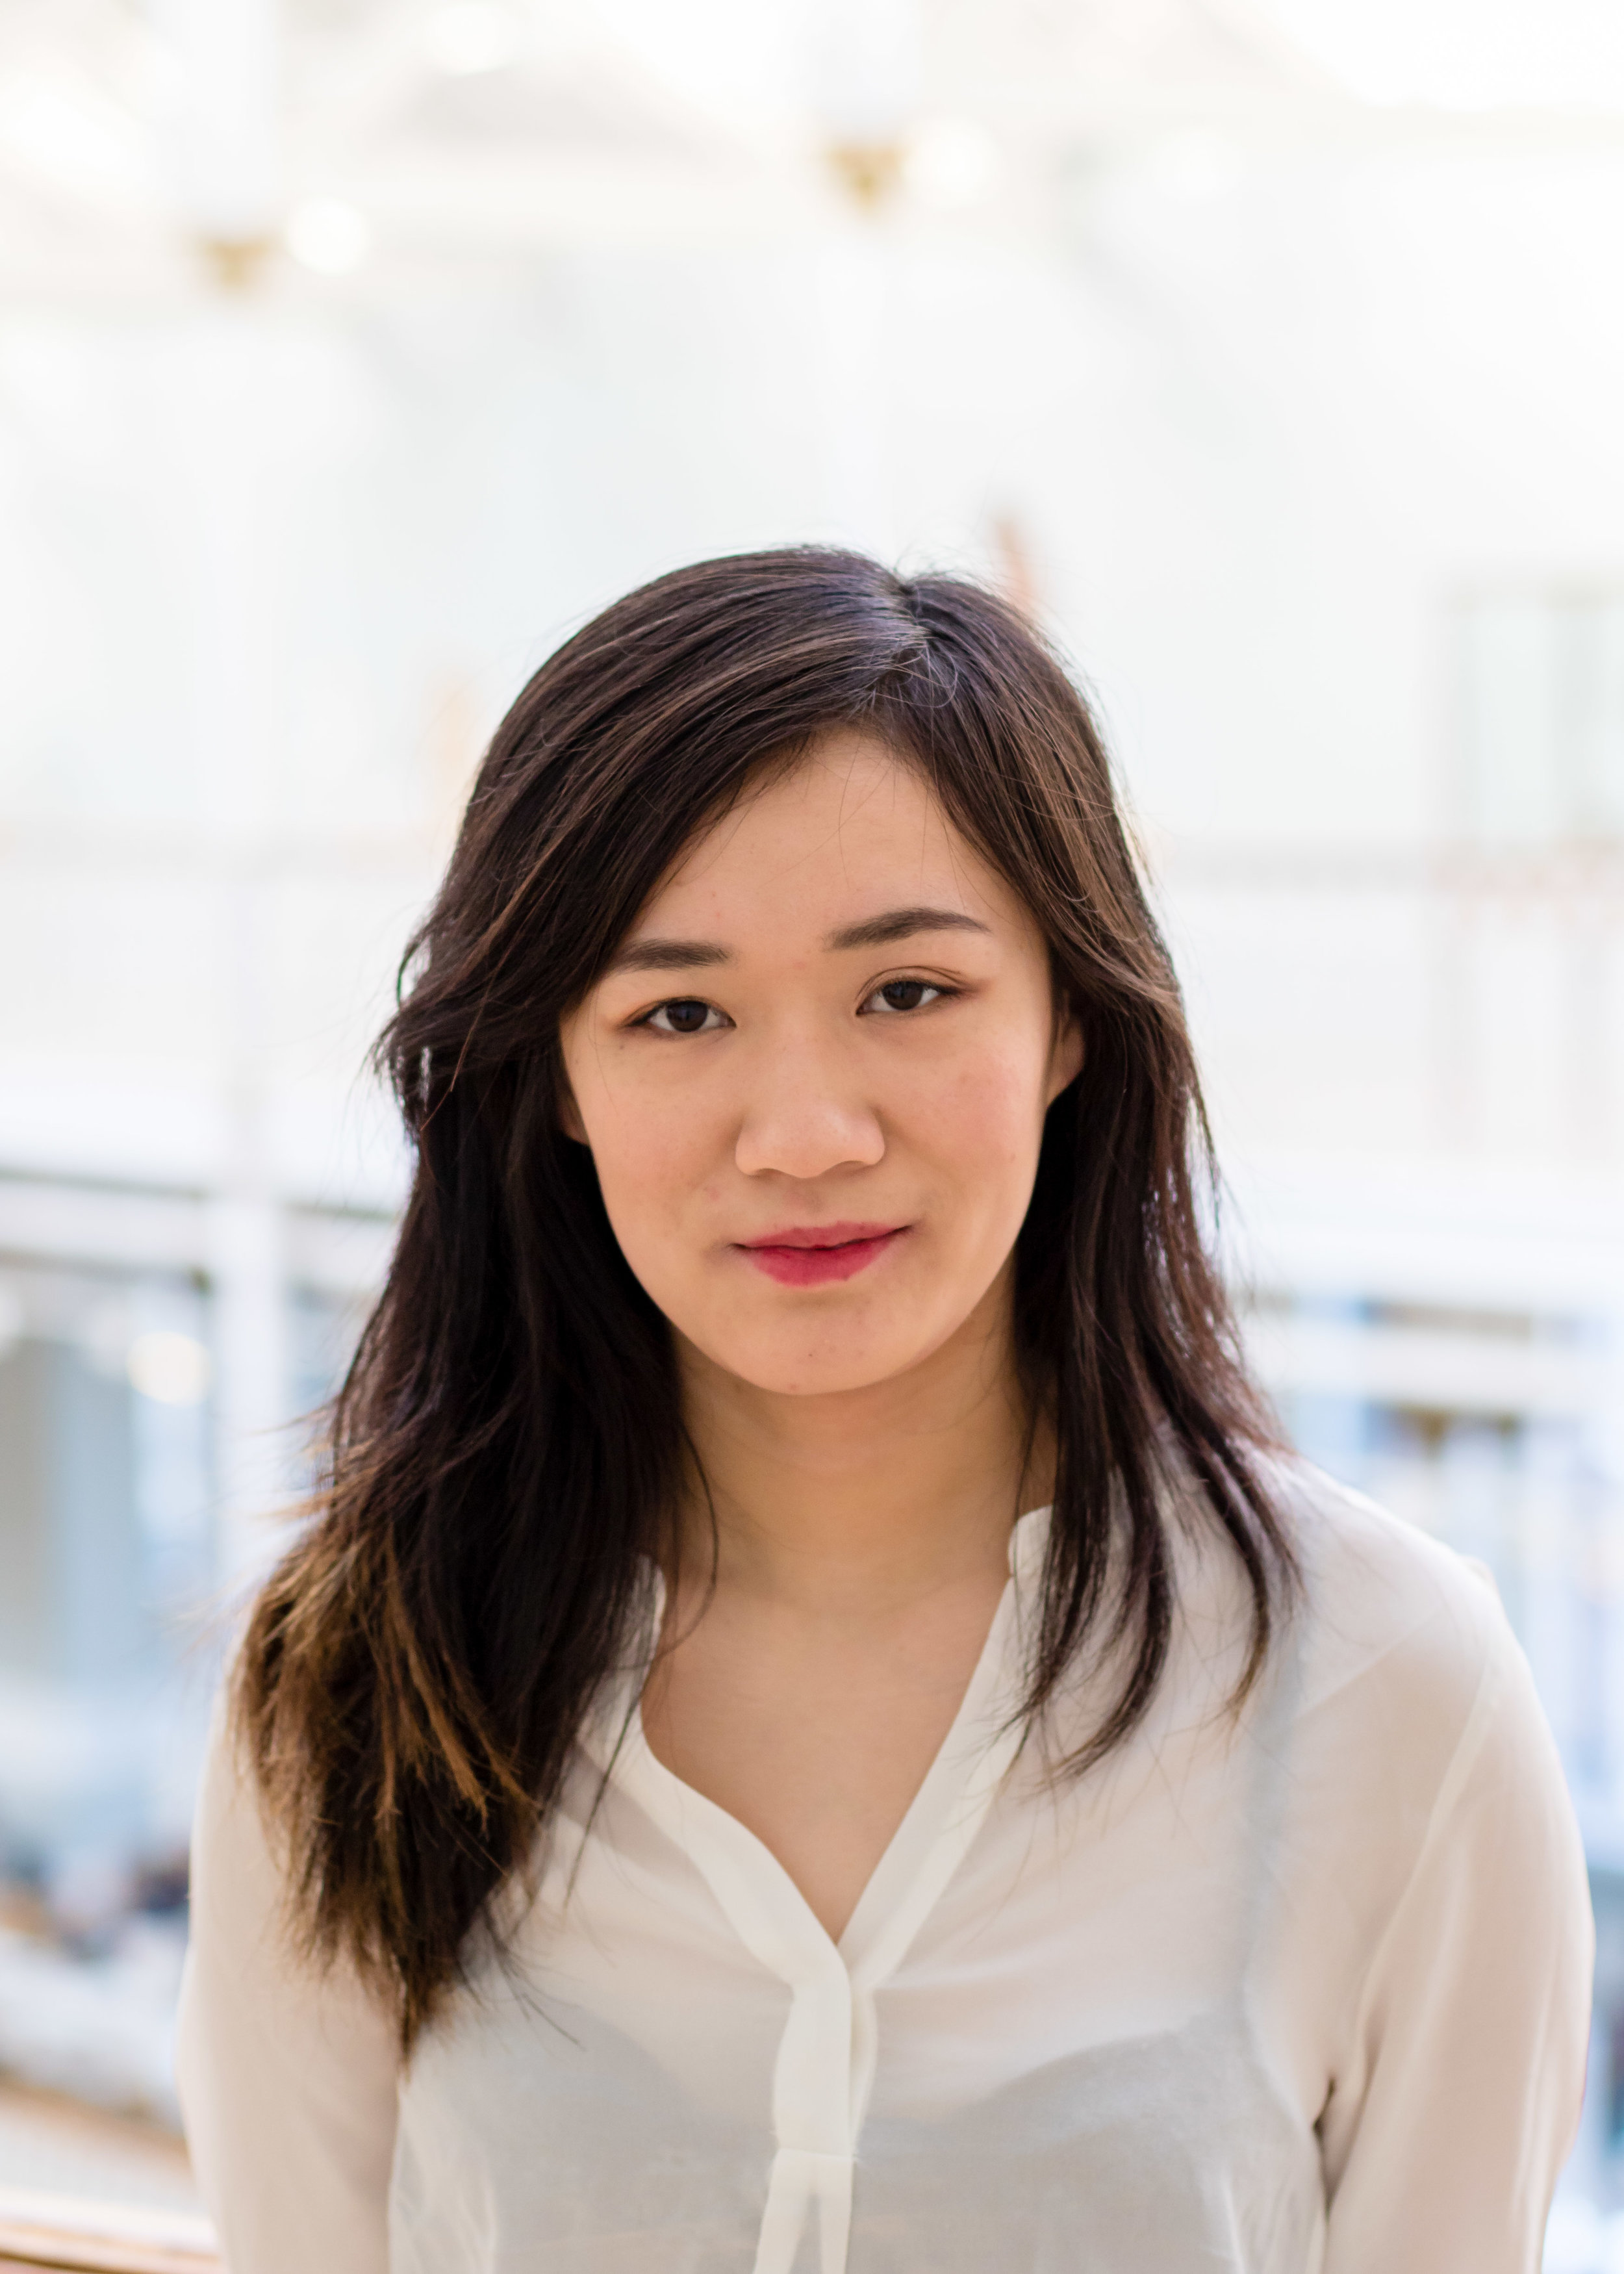 Flora Mao     Secretary   Upstate New York  Area of study: MA Hons Economics and Statistics  Inspiration: The knowledge that diligence begets achievement